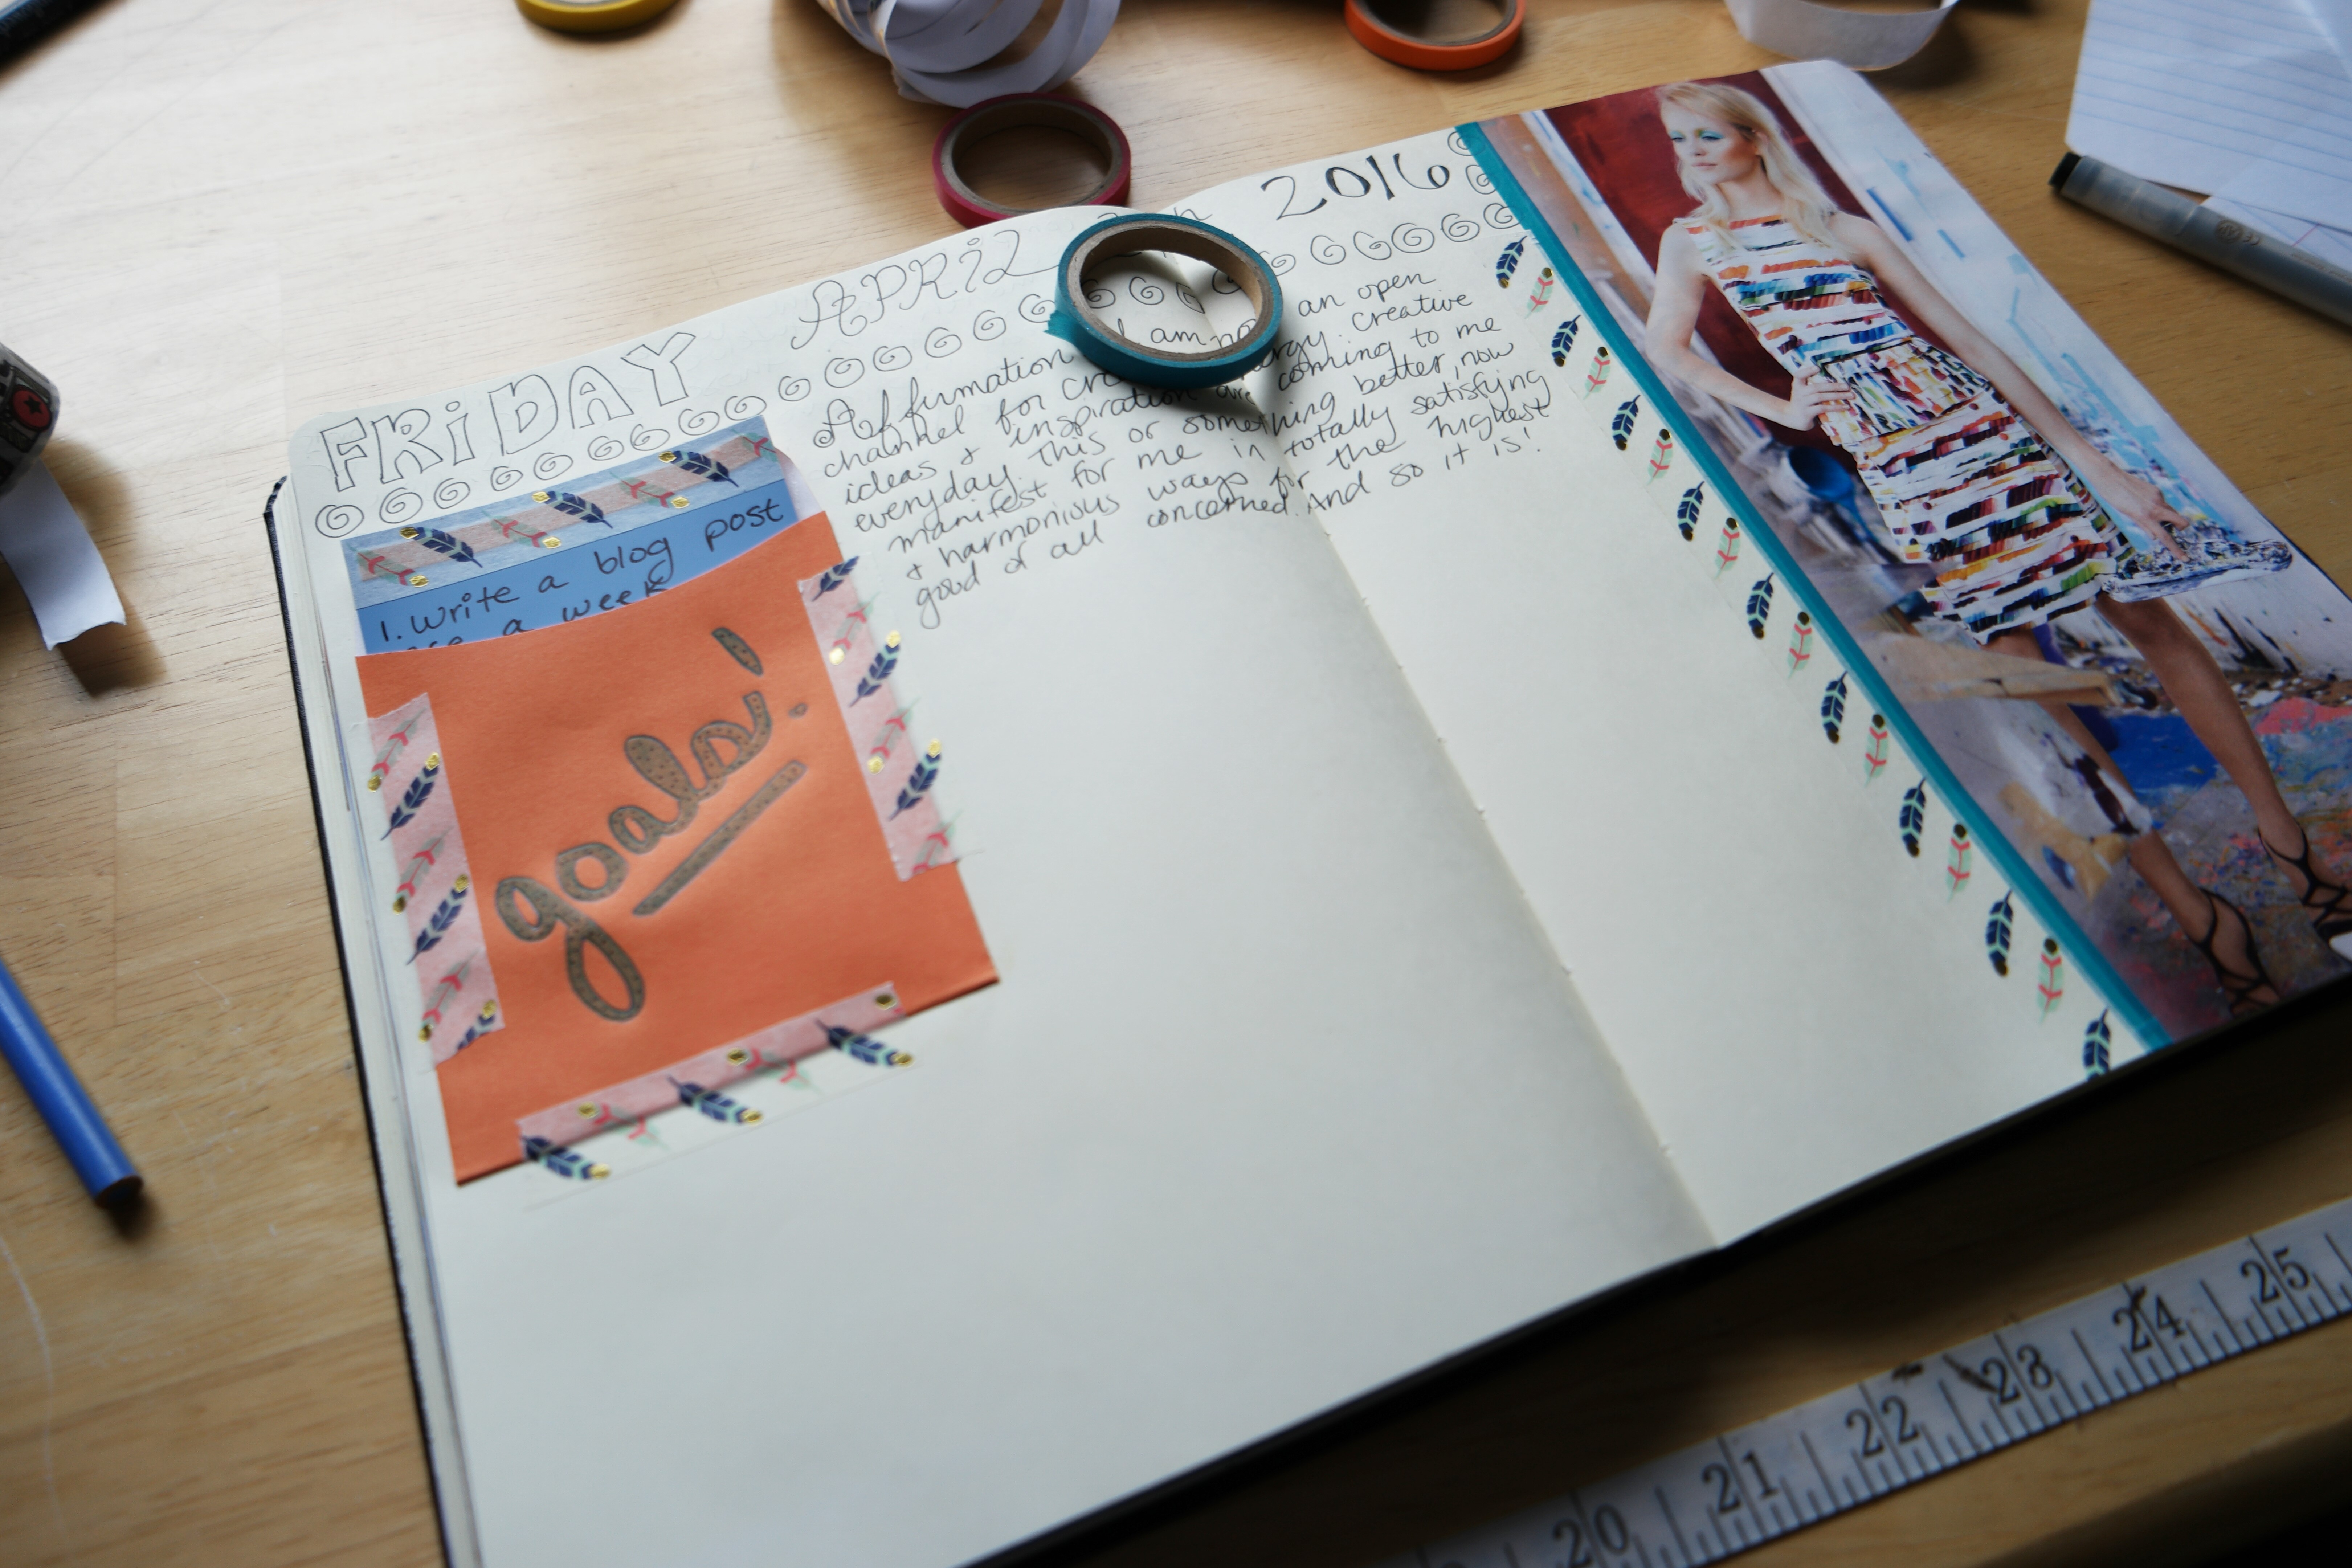 Creative goal-setting in my visual notebook. Writing affirmations.